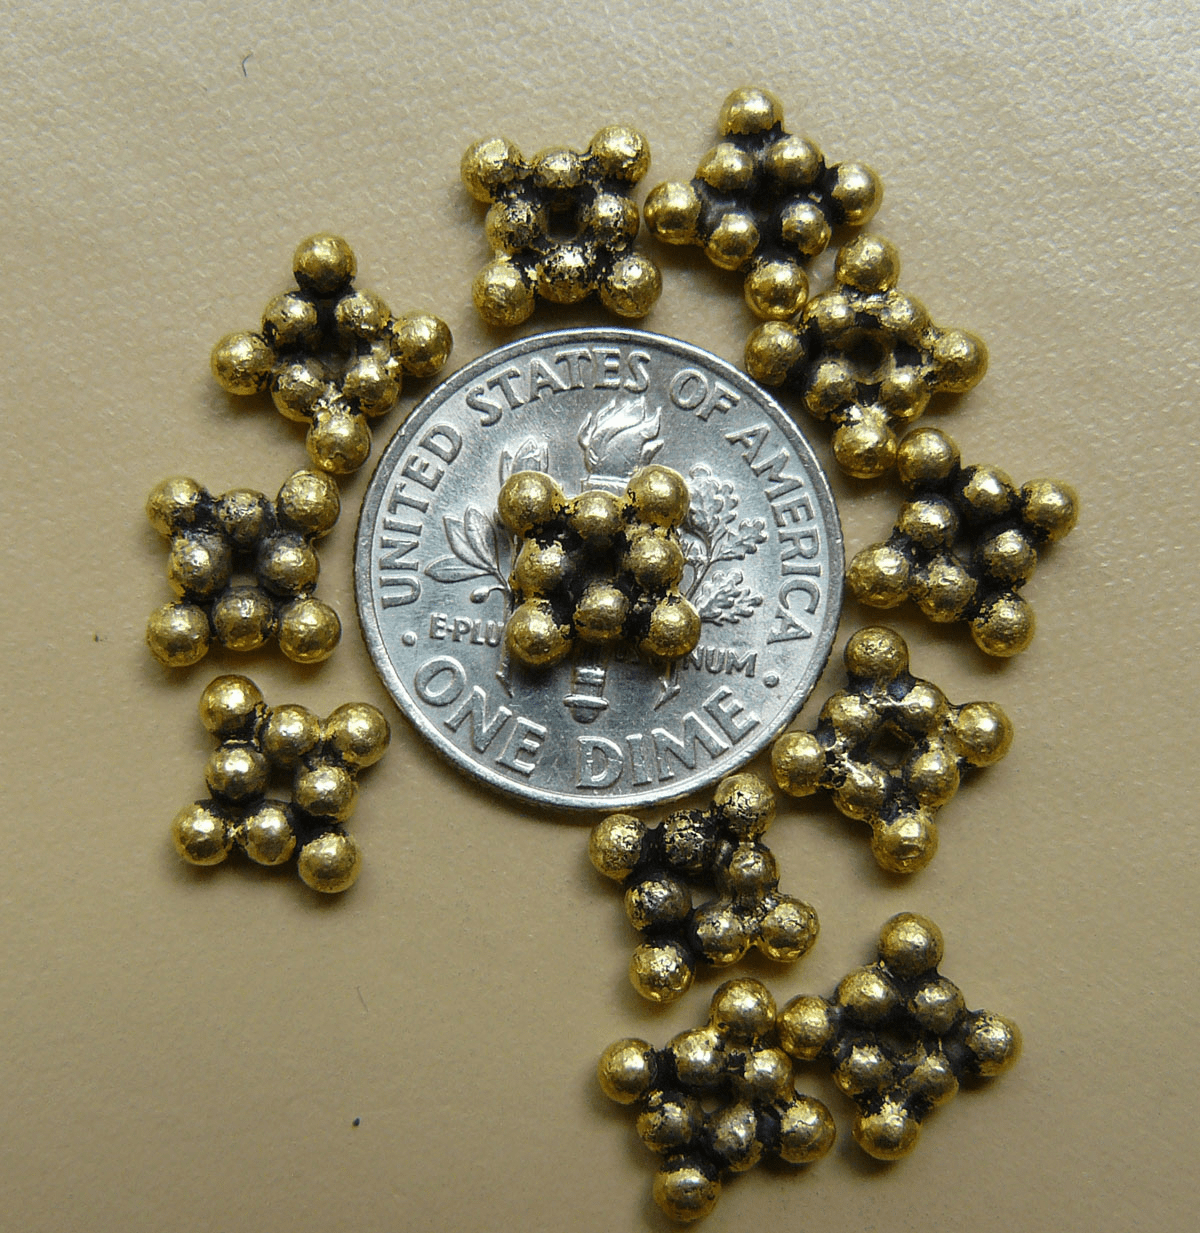 Antique Gold Beads Bonded ove copper core7x2.5mm 40+ beads